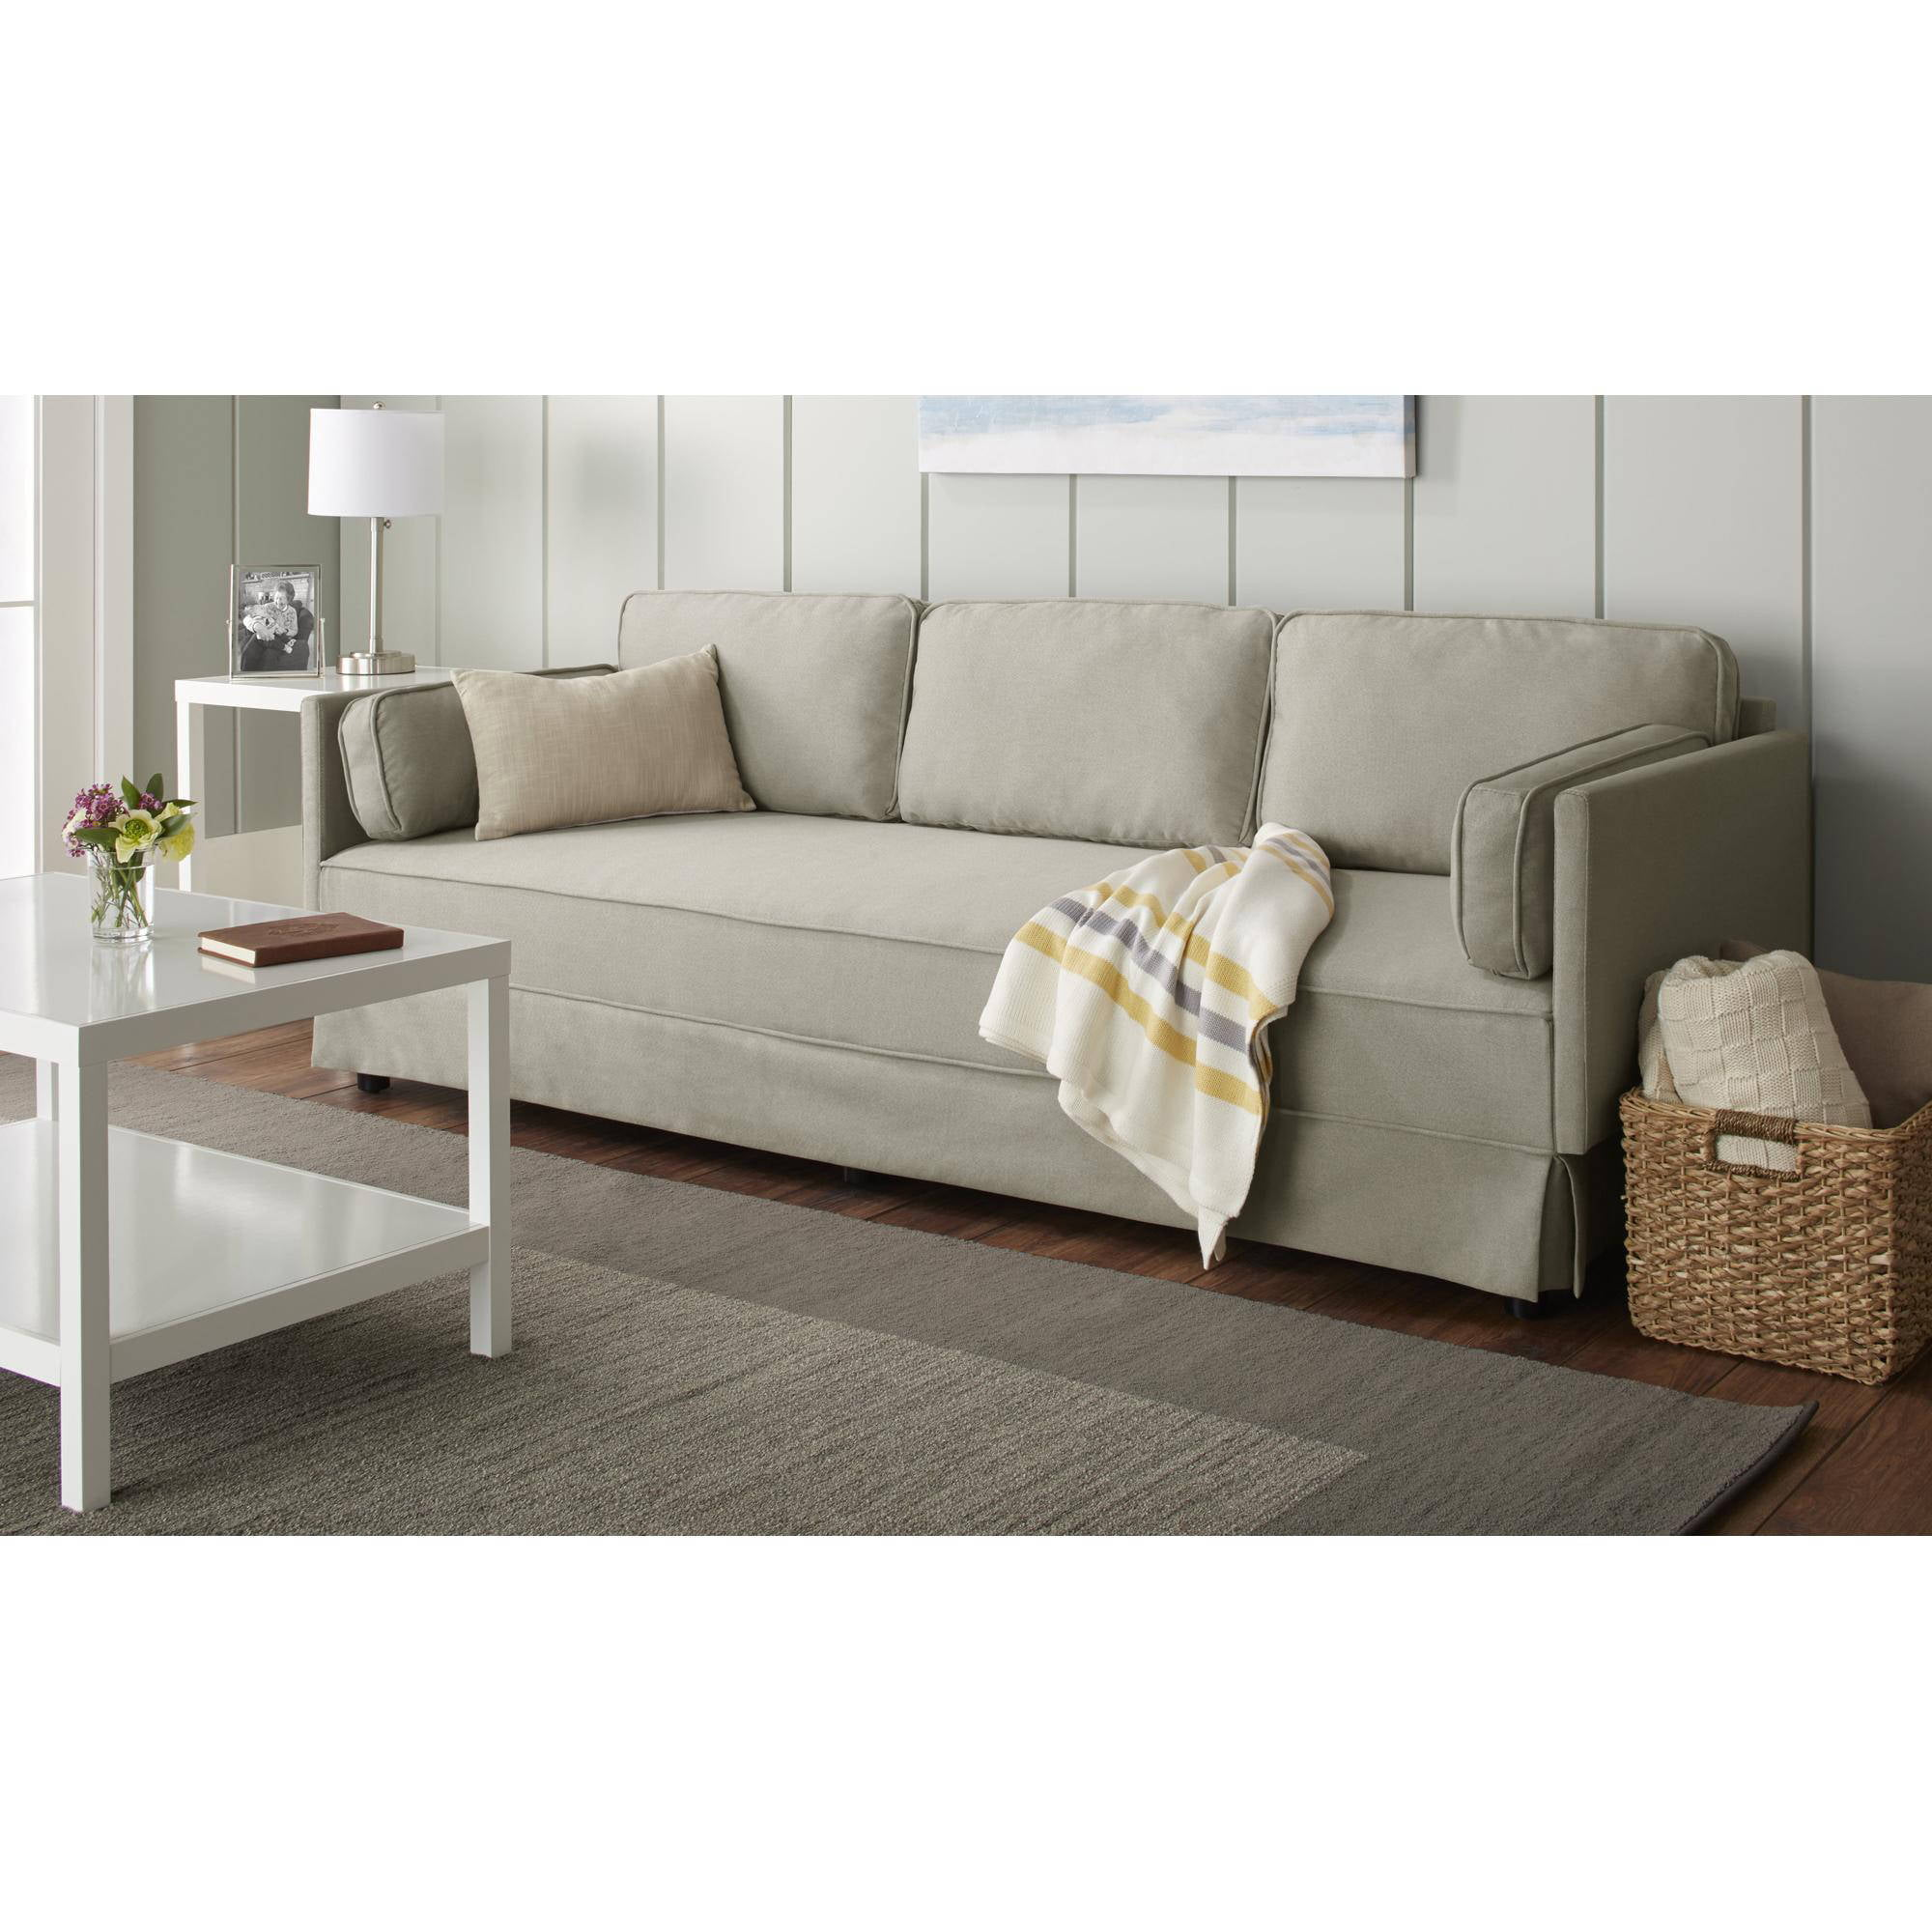 10 Spring Street Durant Sofa Multiple Colors Walmart